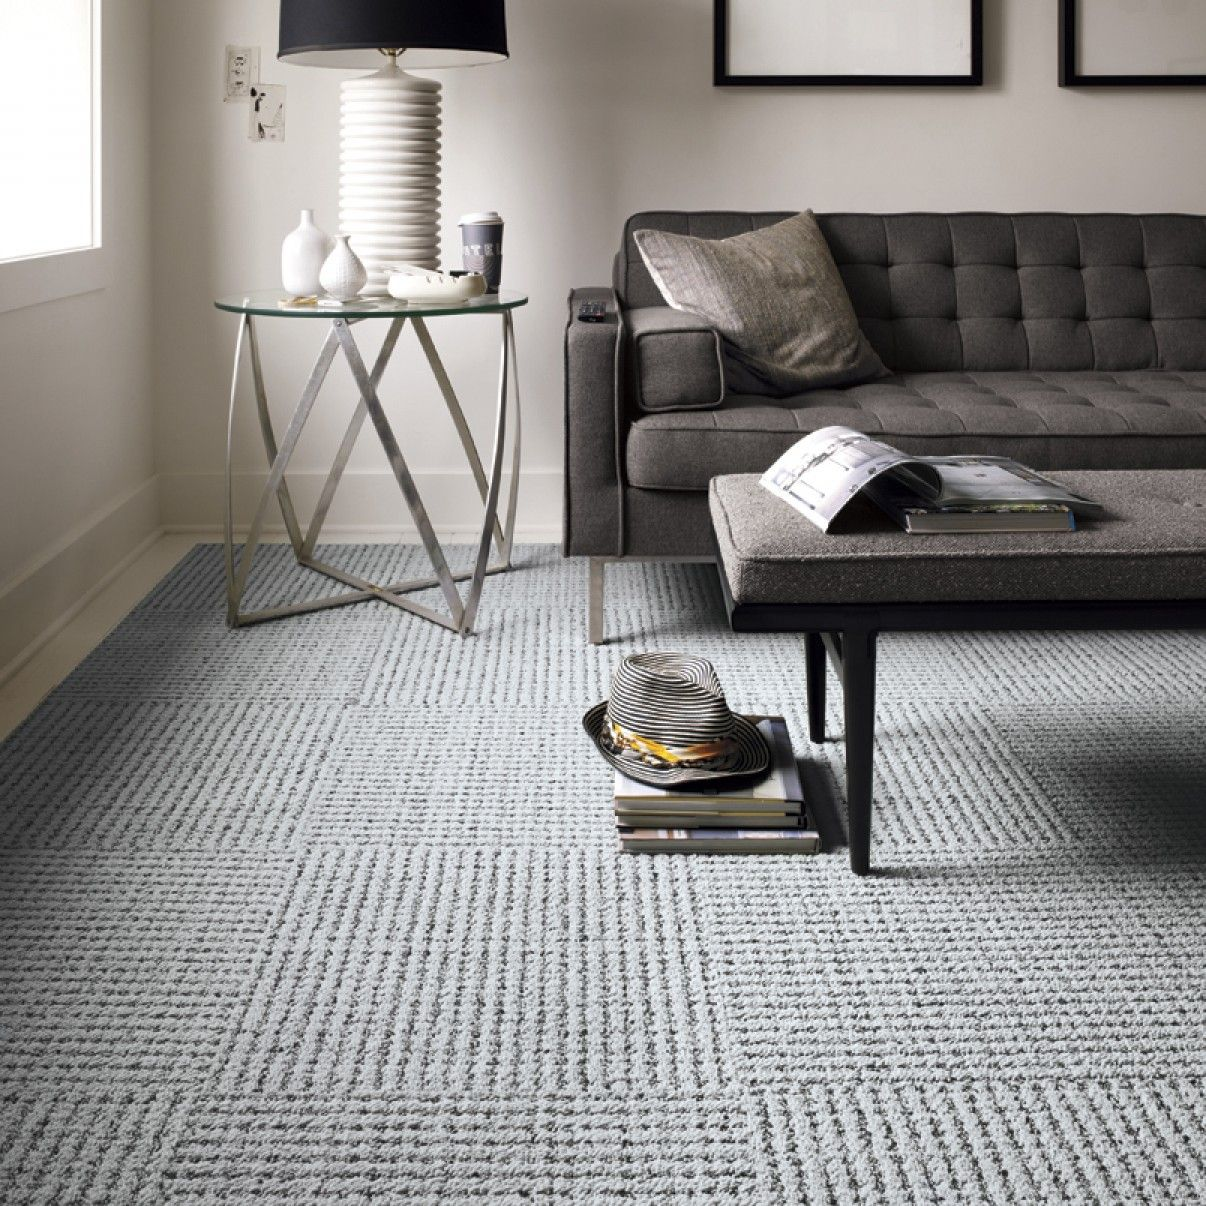 flor carpet tiles-love this chunky gray pattern for boys' room